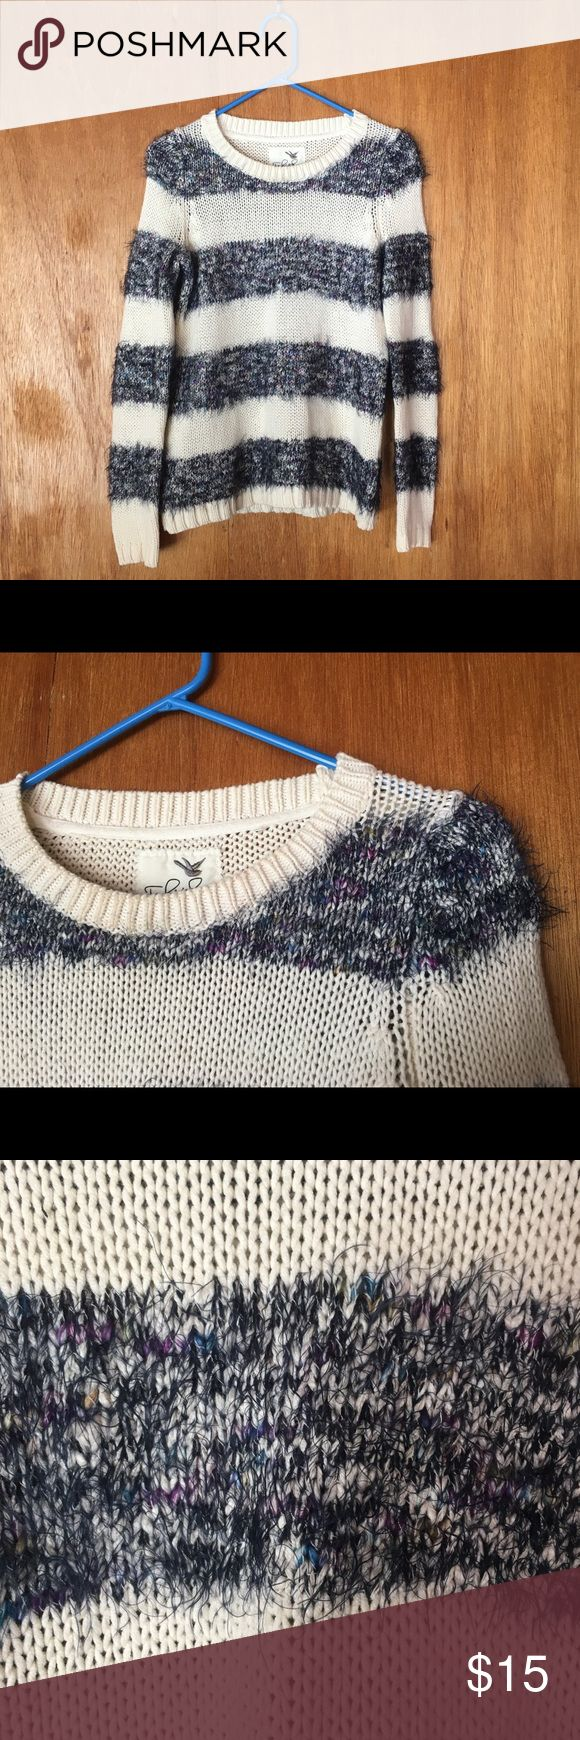 End of Season Sale! Comfy Anthropologie Sweater Comfy Anthro Sweater. Never worn. Anthropologie Sweaters Cardigans